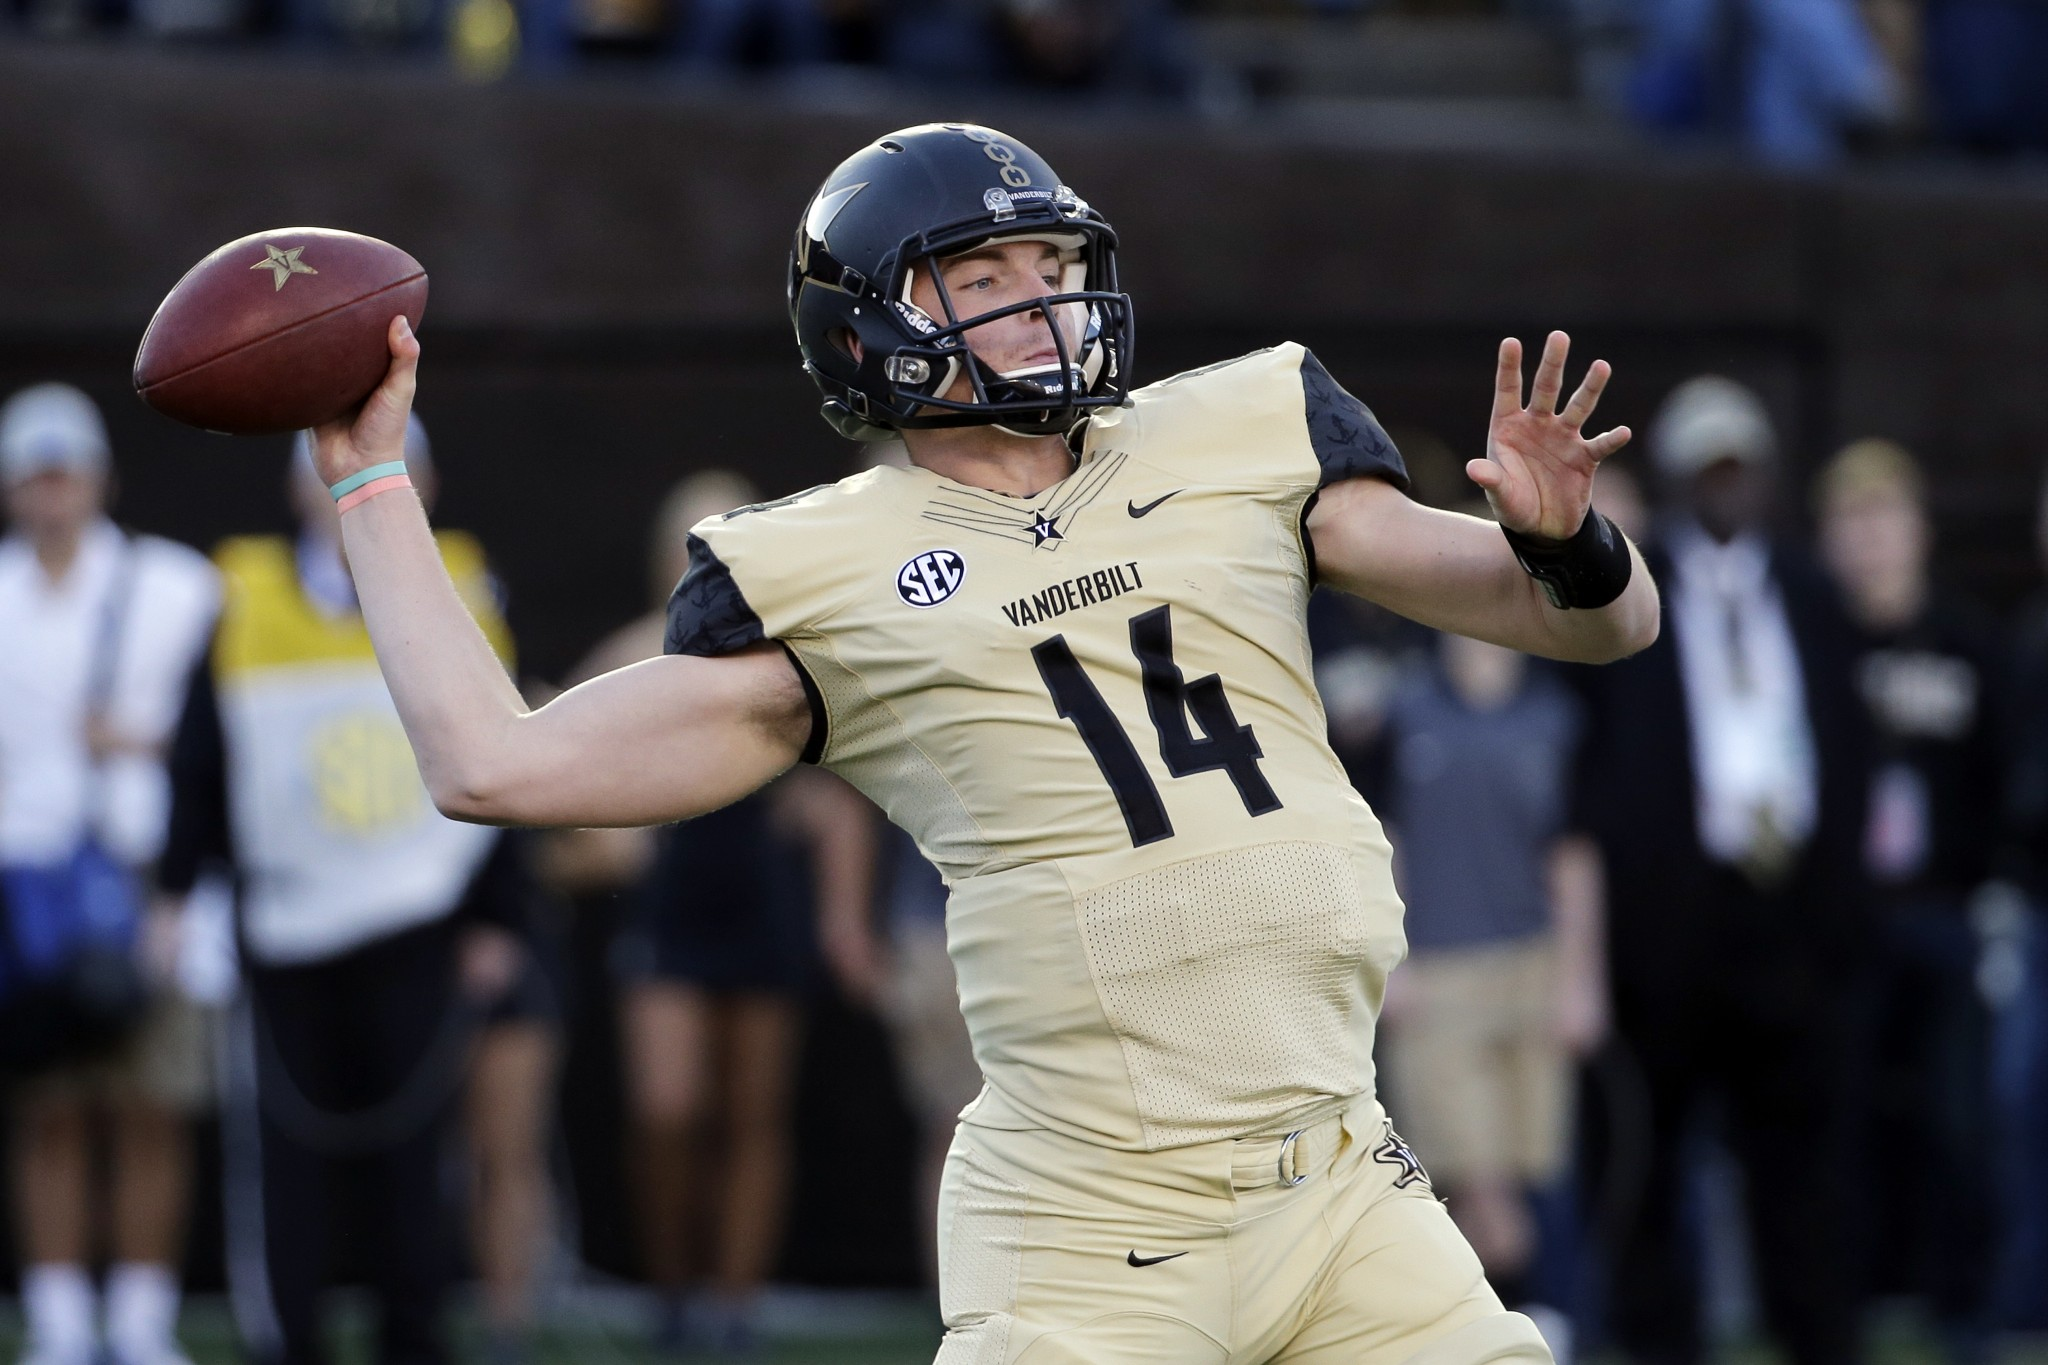 In this Nov. 14, 2015, file photo, Vanderbilt quarterback Kyle Shurmur passes against Kentucky in the first half of an NCAA college football game, in Nashville, Tenn. (AP Photo/Mark Humphrey, File)